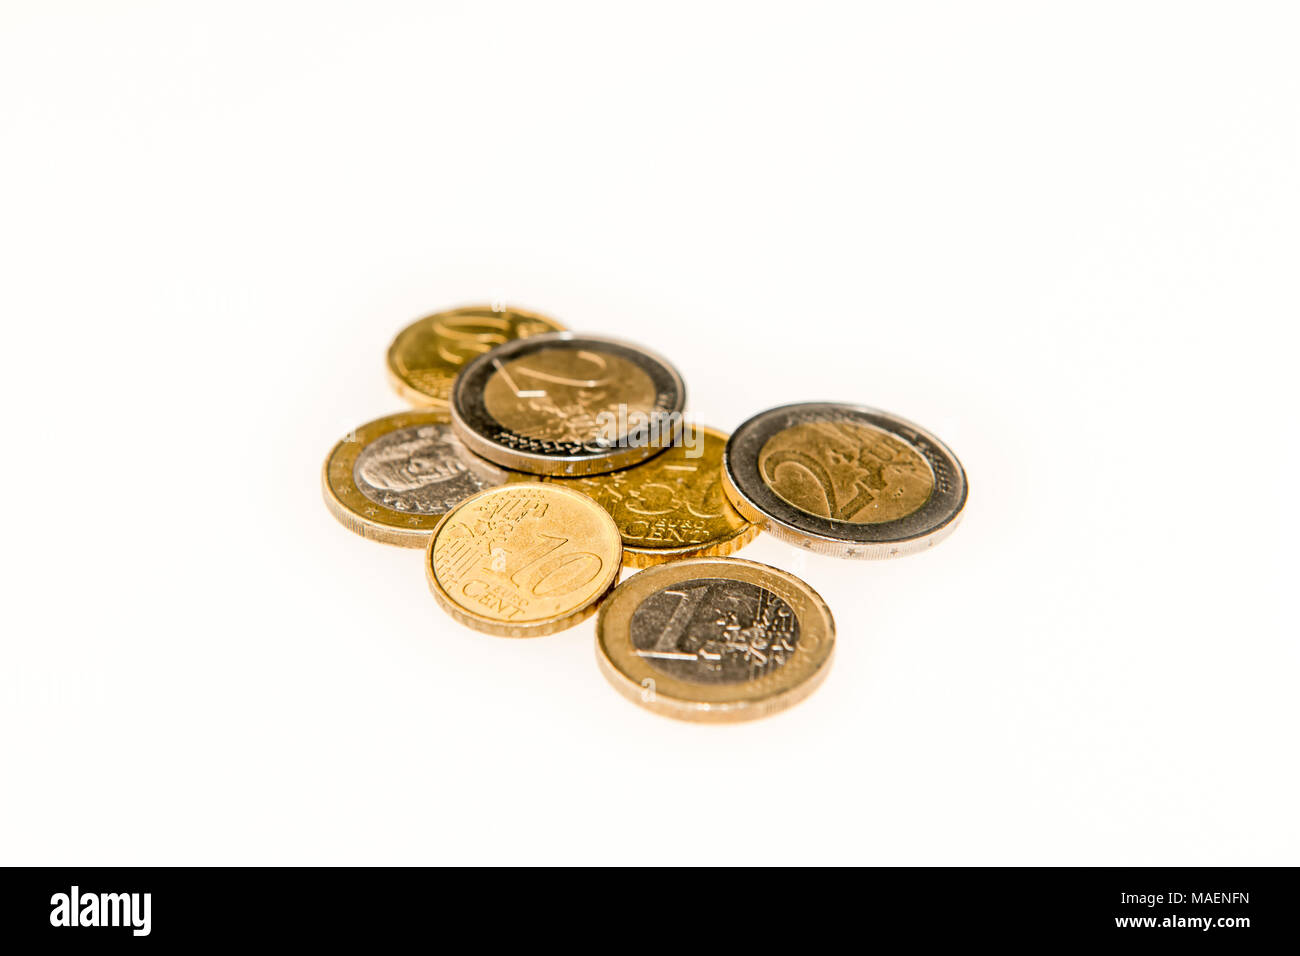 Various kinds of Euro coins on a white background - Stock Image